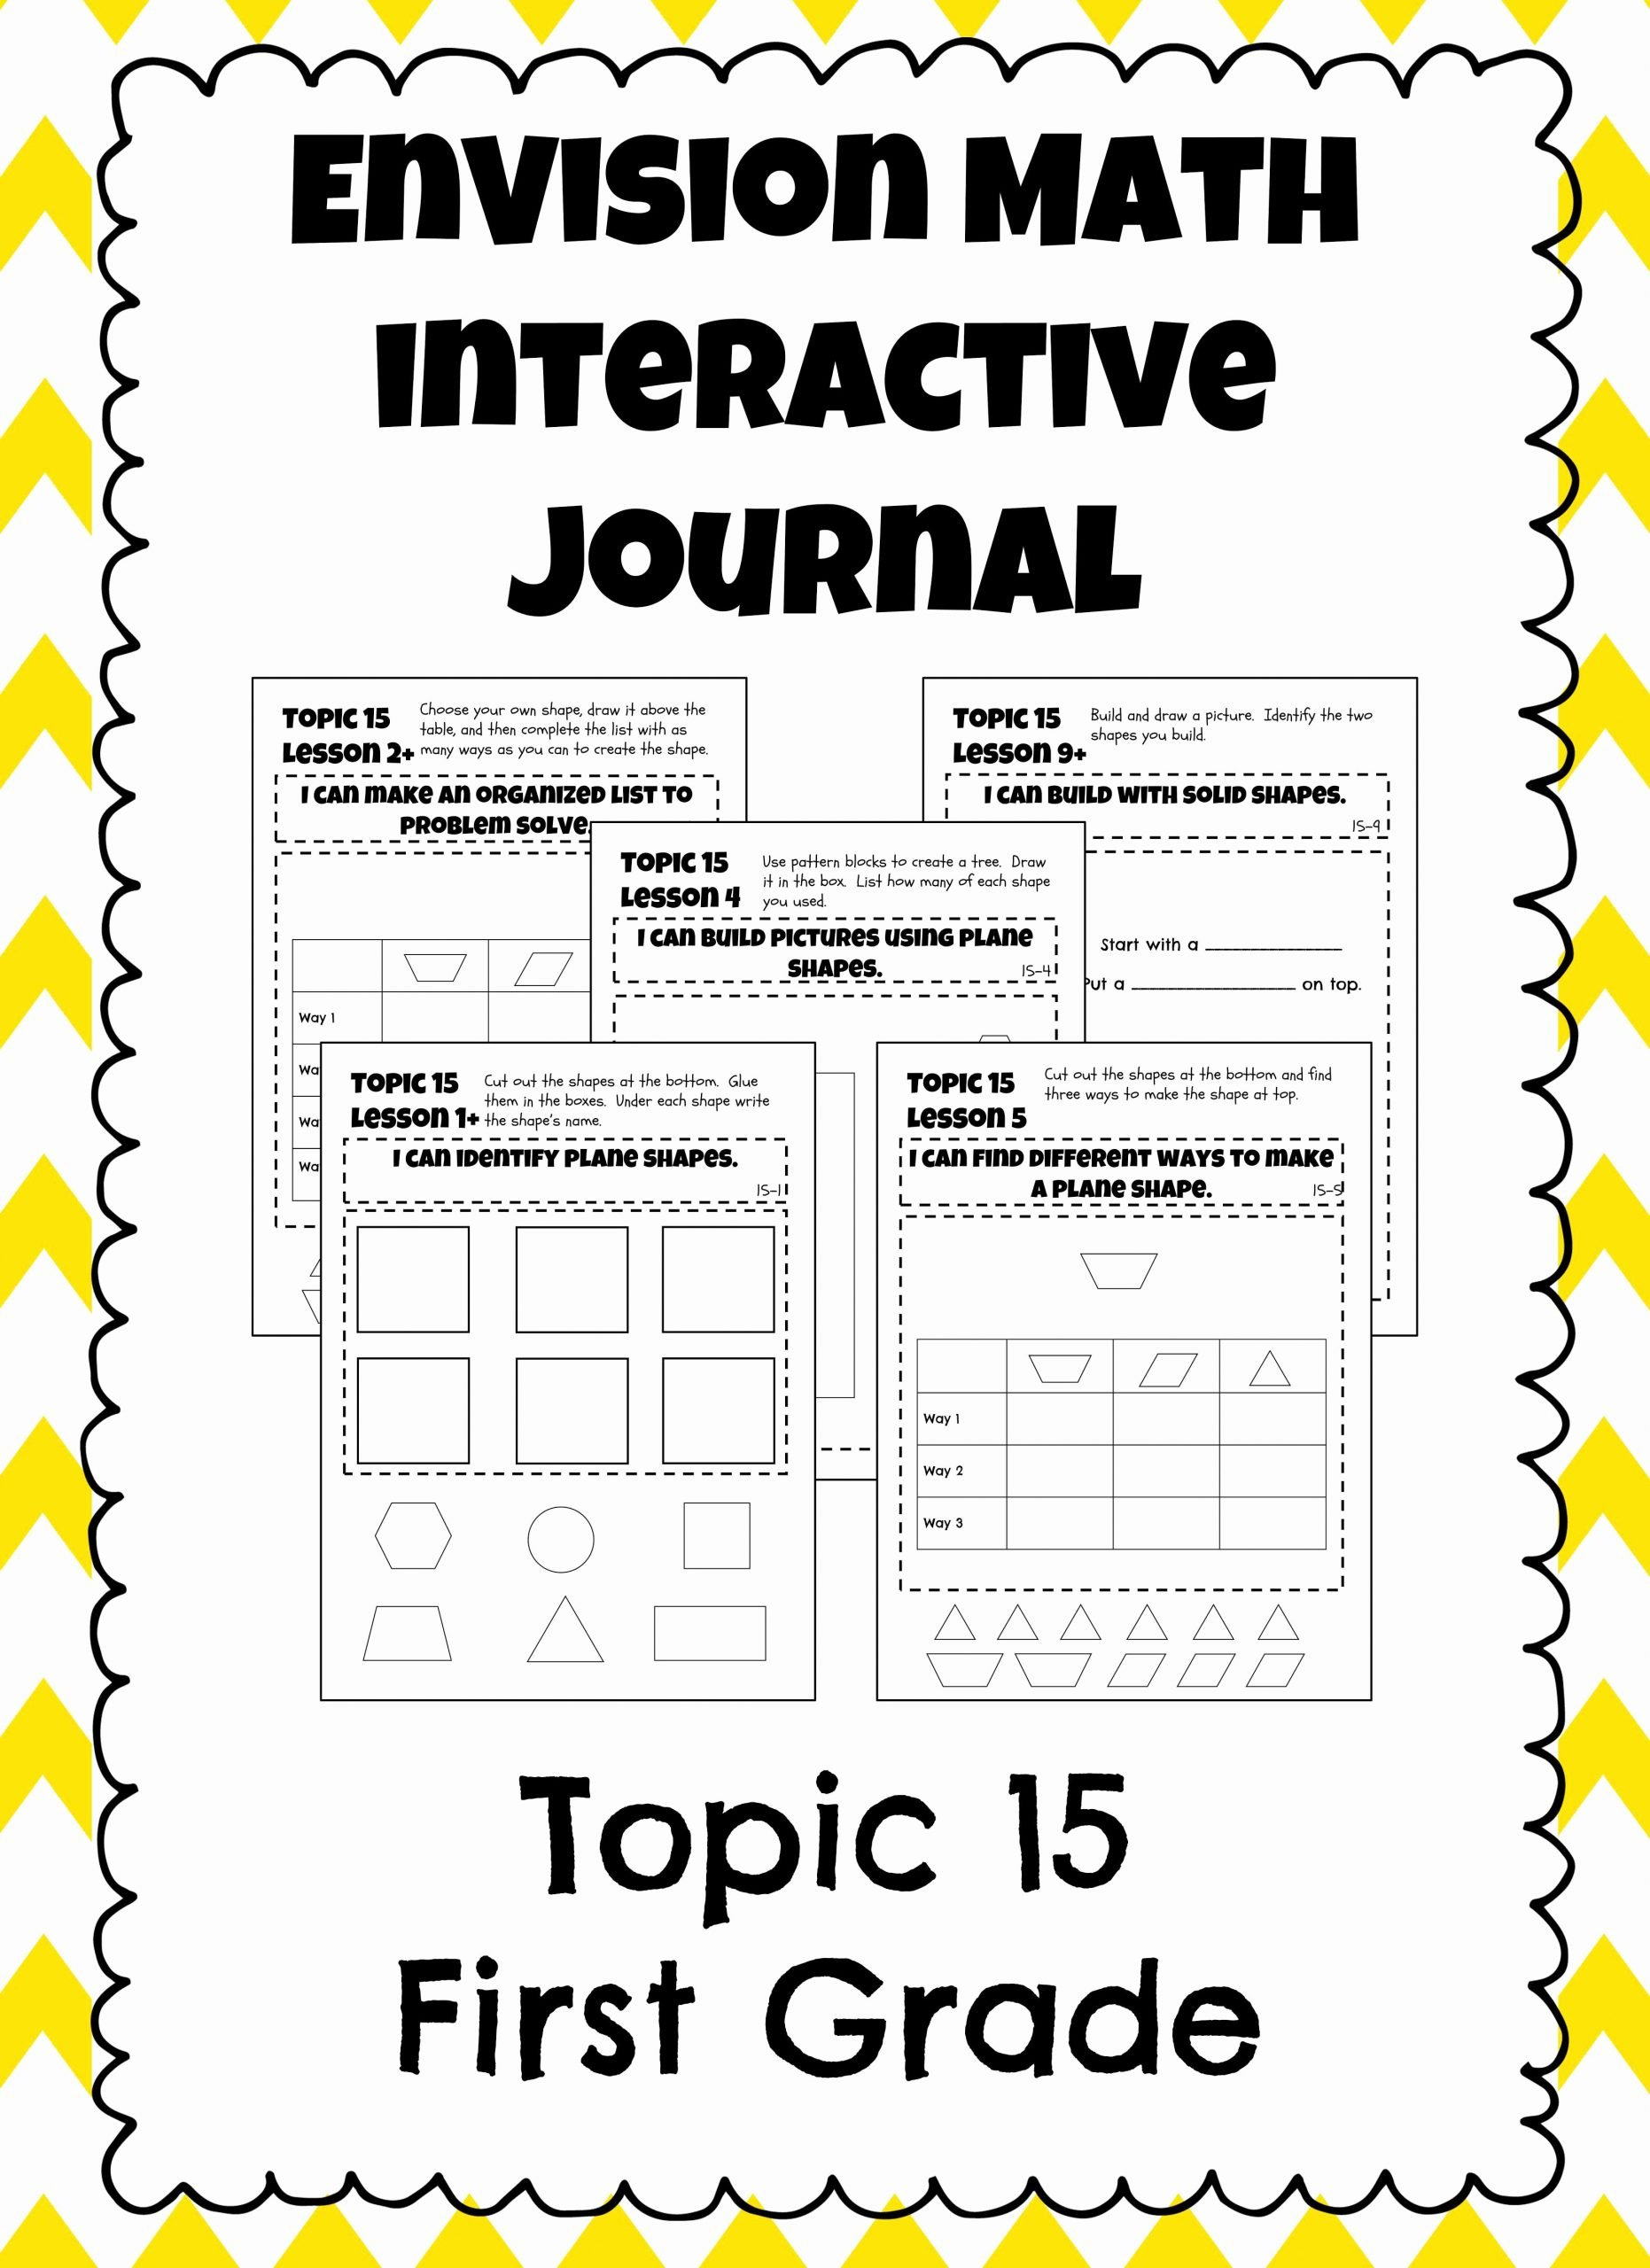 Envision Math 1st Grade Worksheets Ideas Envision Math topic 15 Interactive Journal Notebook